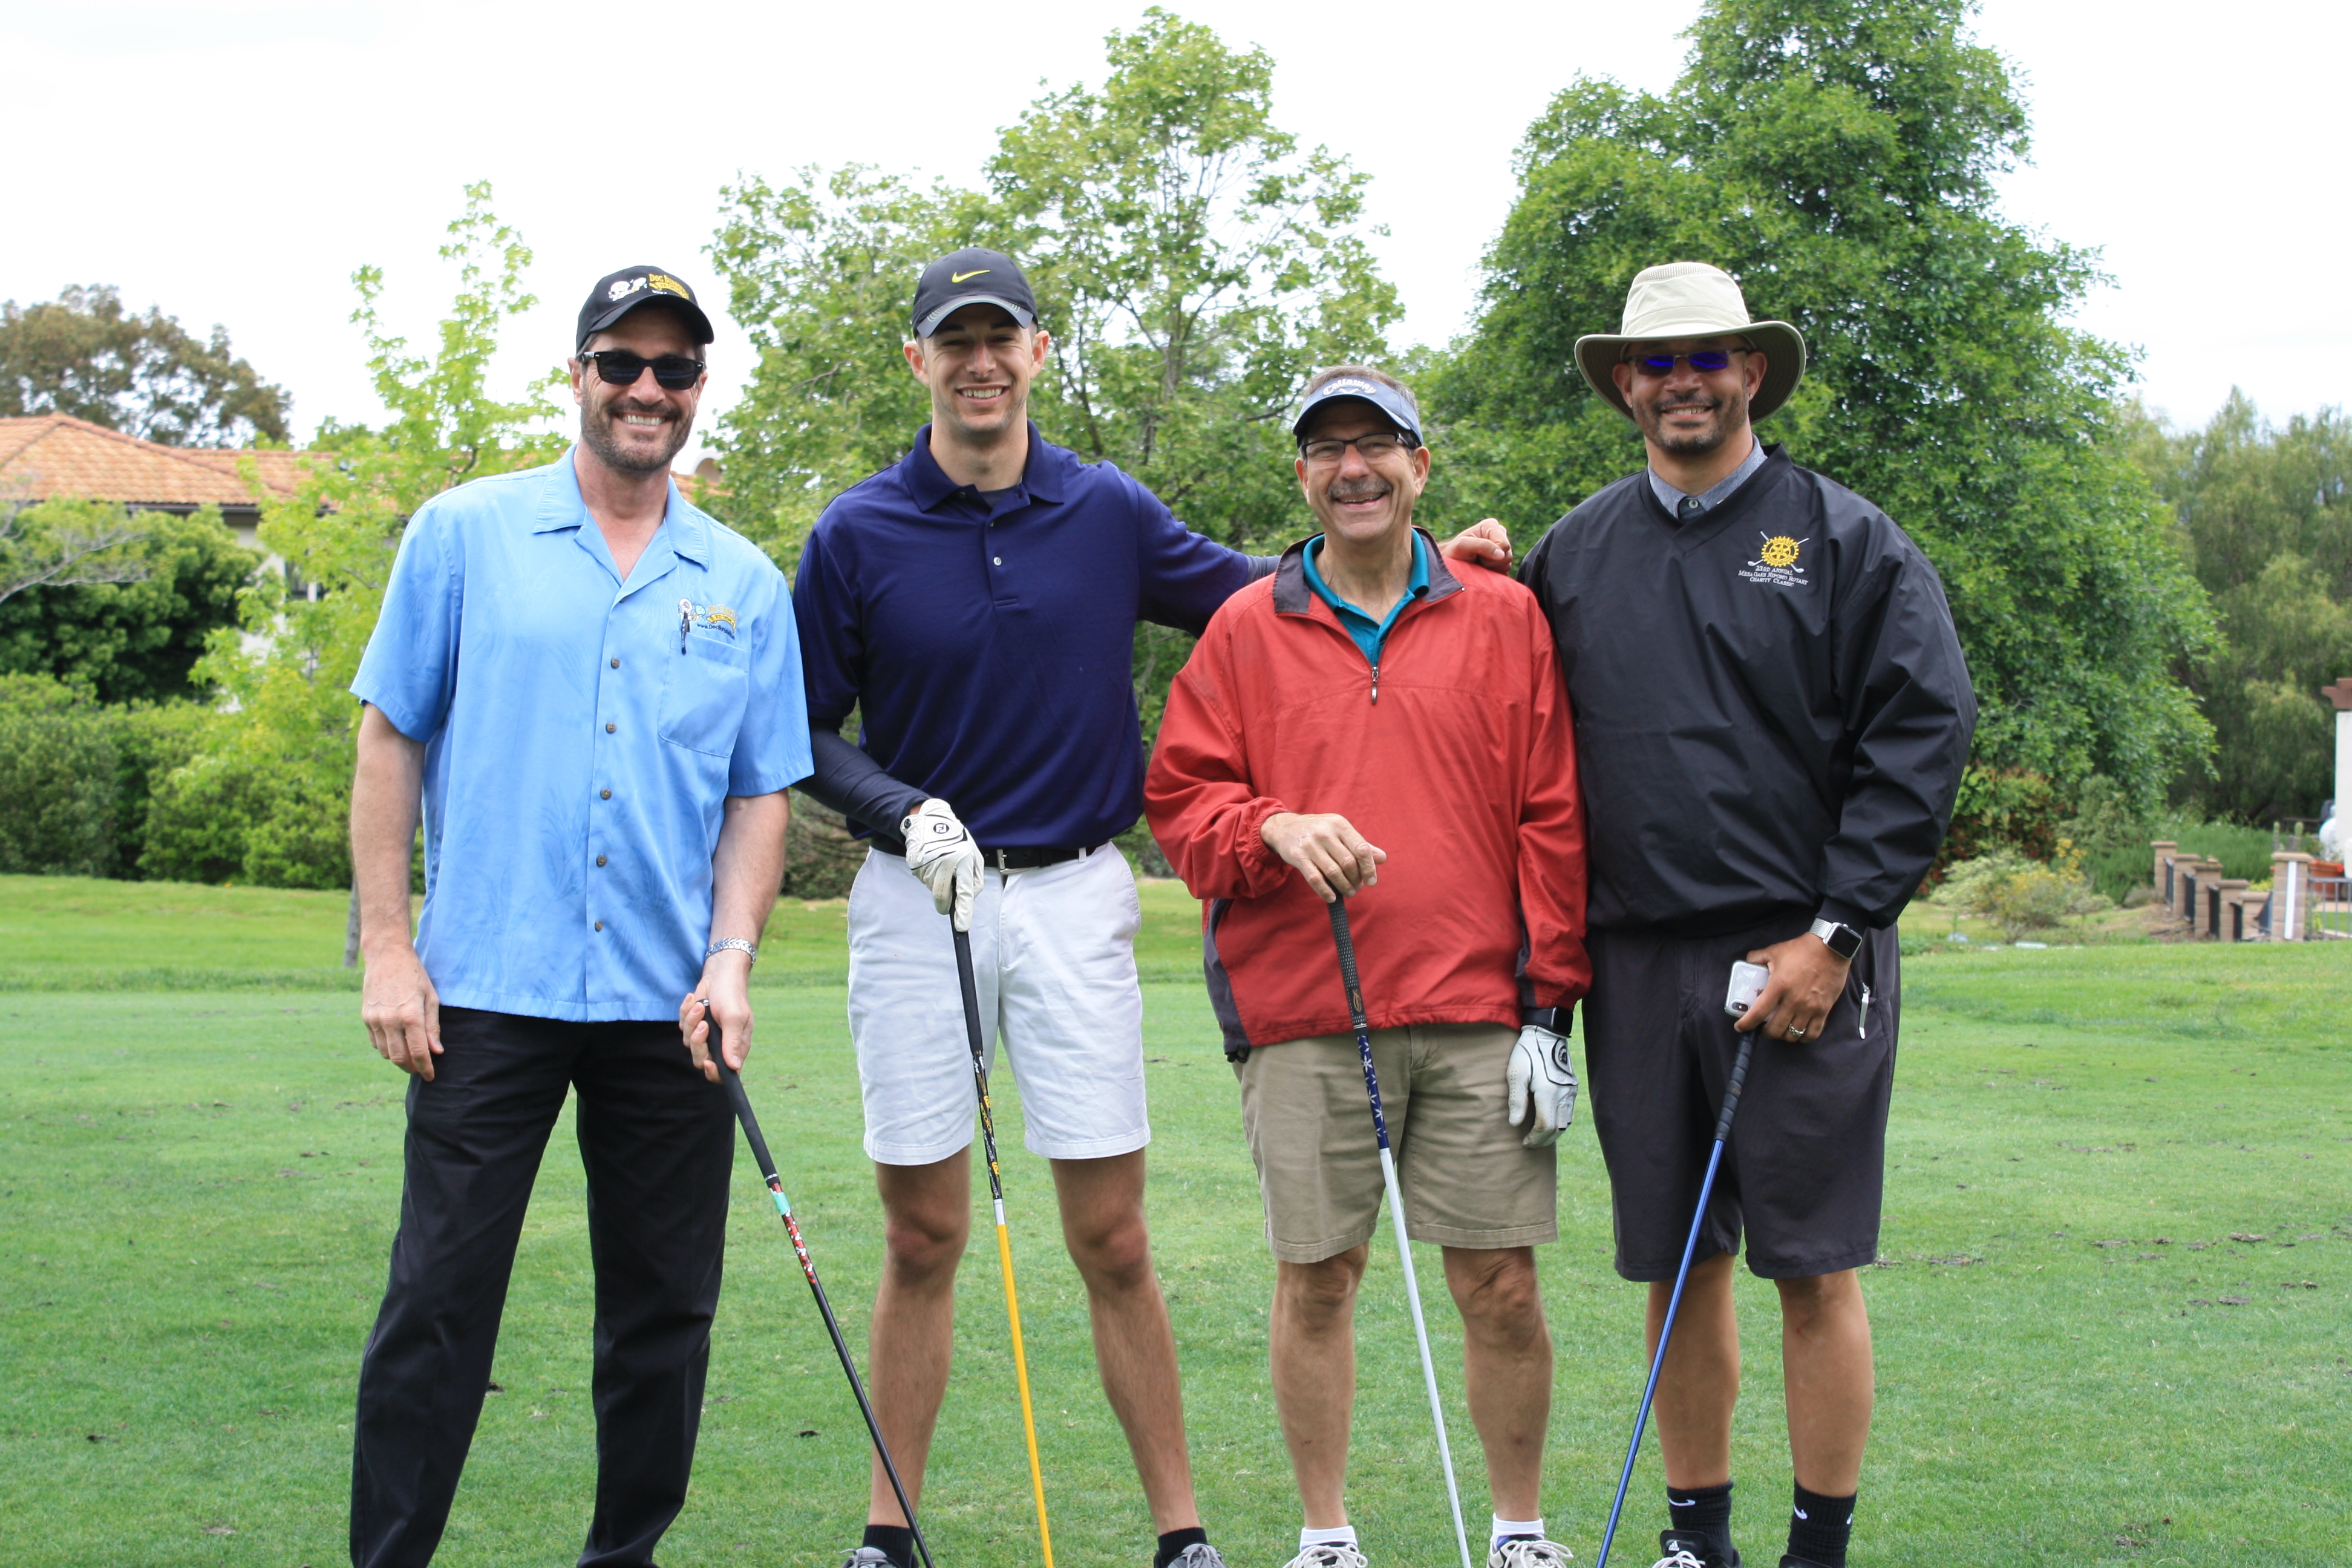 Pismo Beach-Five Cities Rotary Club Foundation Golf Classic gallery image #10